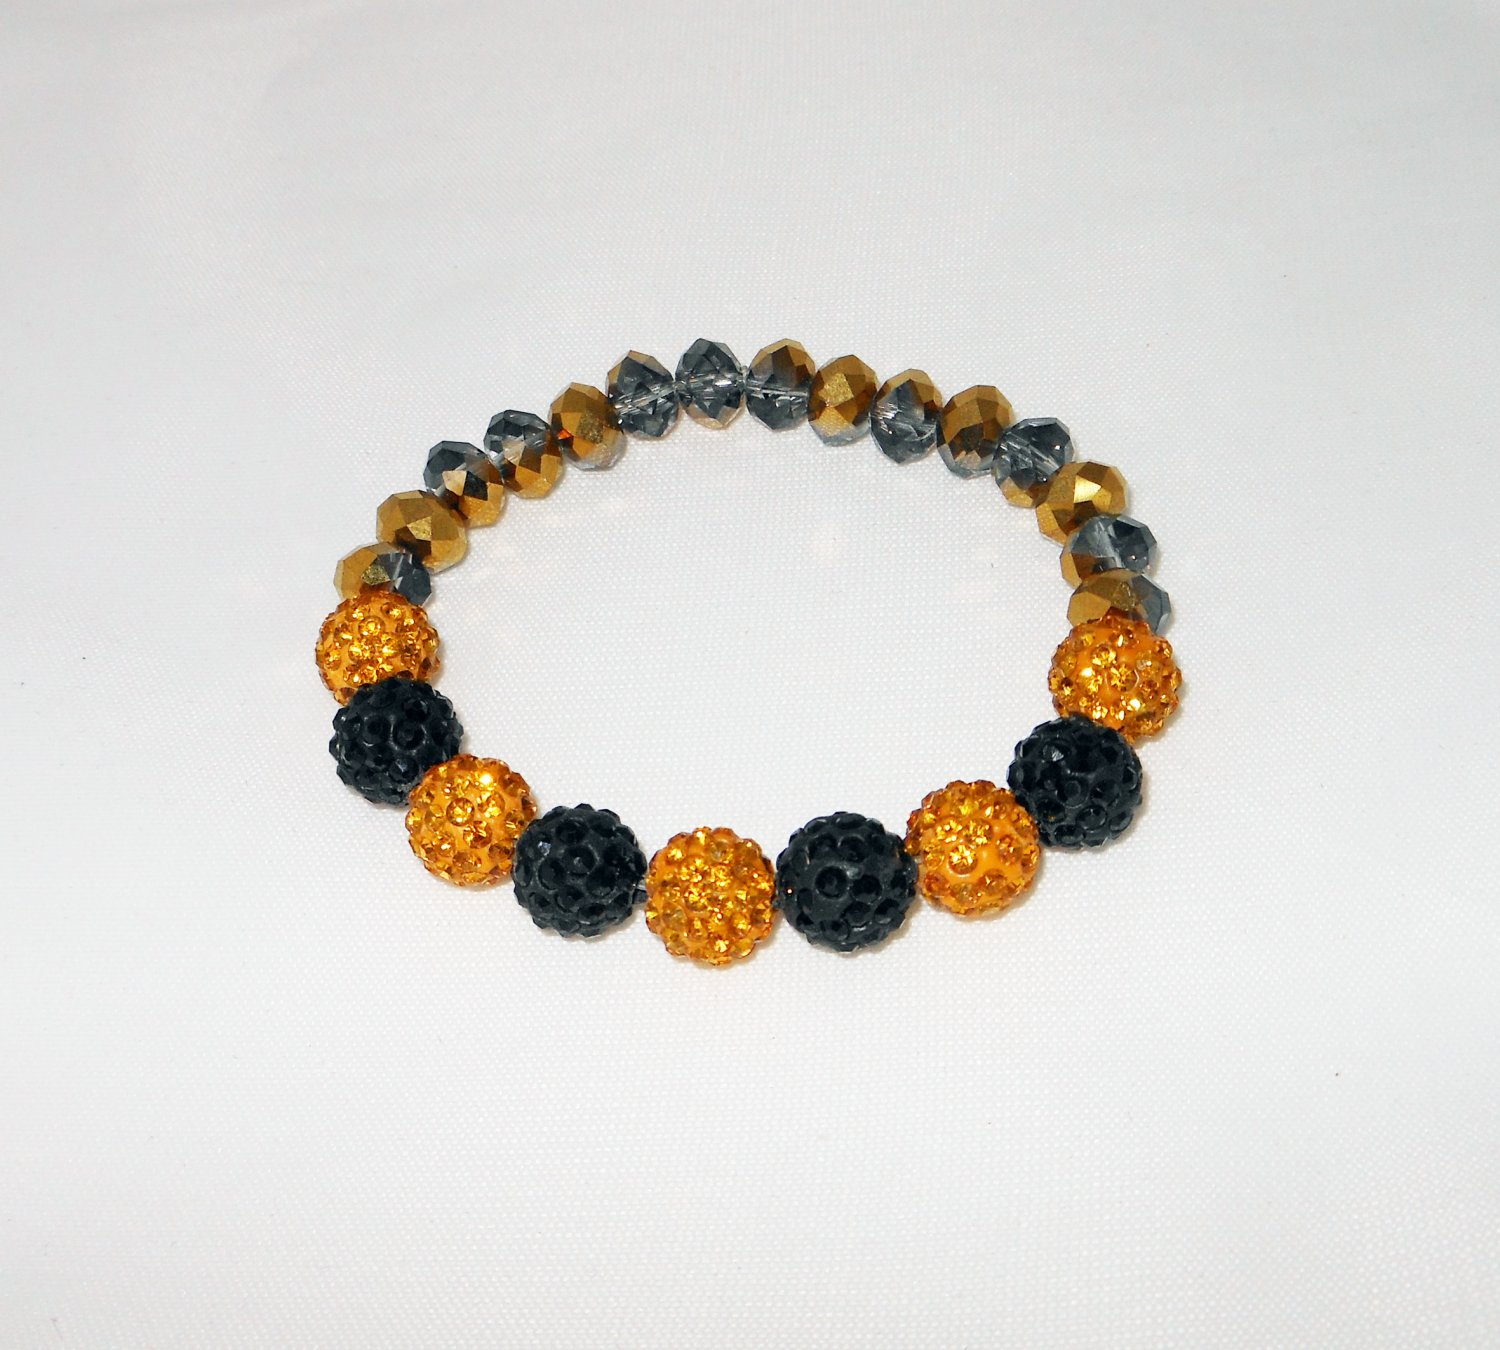 Gold and Black Crystal Stretchy Shamballa Bracelet with crystal strap